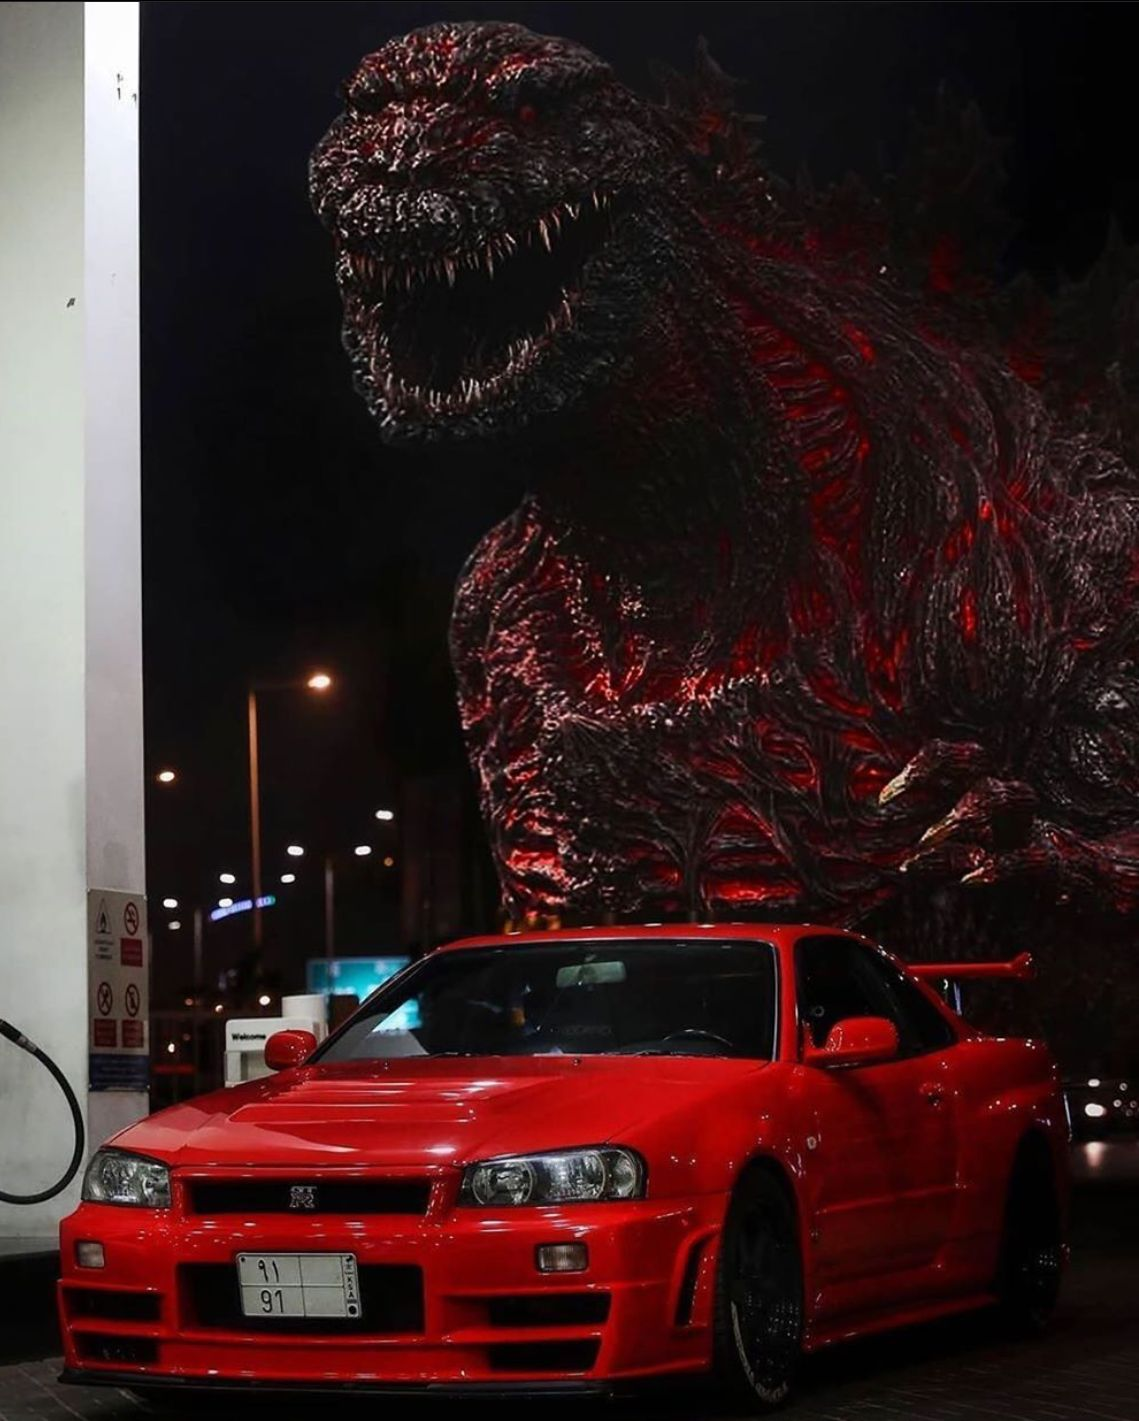 Pin By Mia On Gtr R34 R34 Skyline Red And Black Wallpaper Jdm Wallpaper